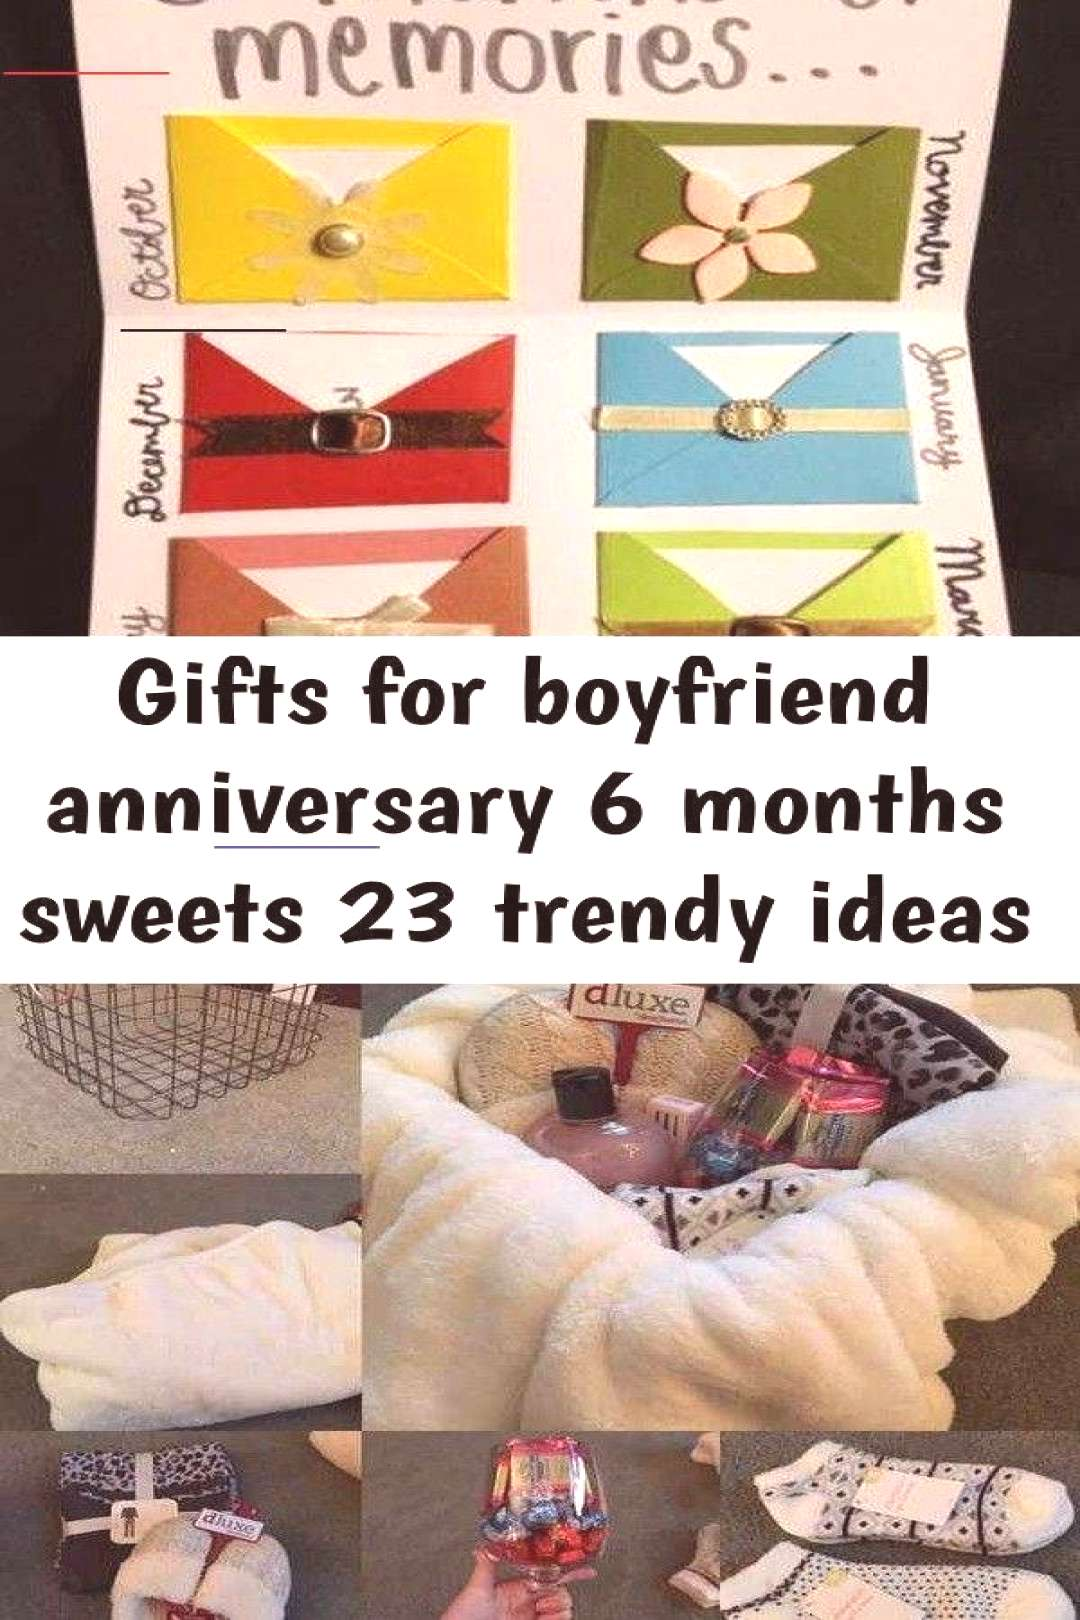 Gifts for boyfriend anniversary 6 months sweets 23 trendy ideas Gifts For Boyfri... for boyfriend